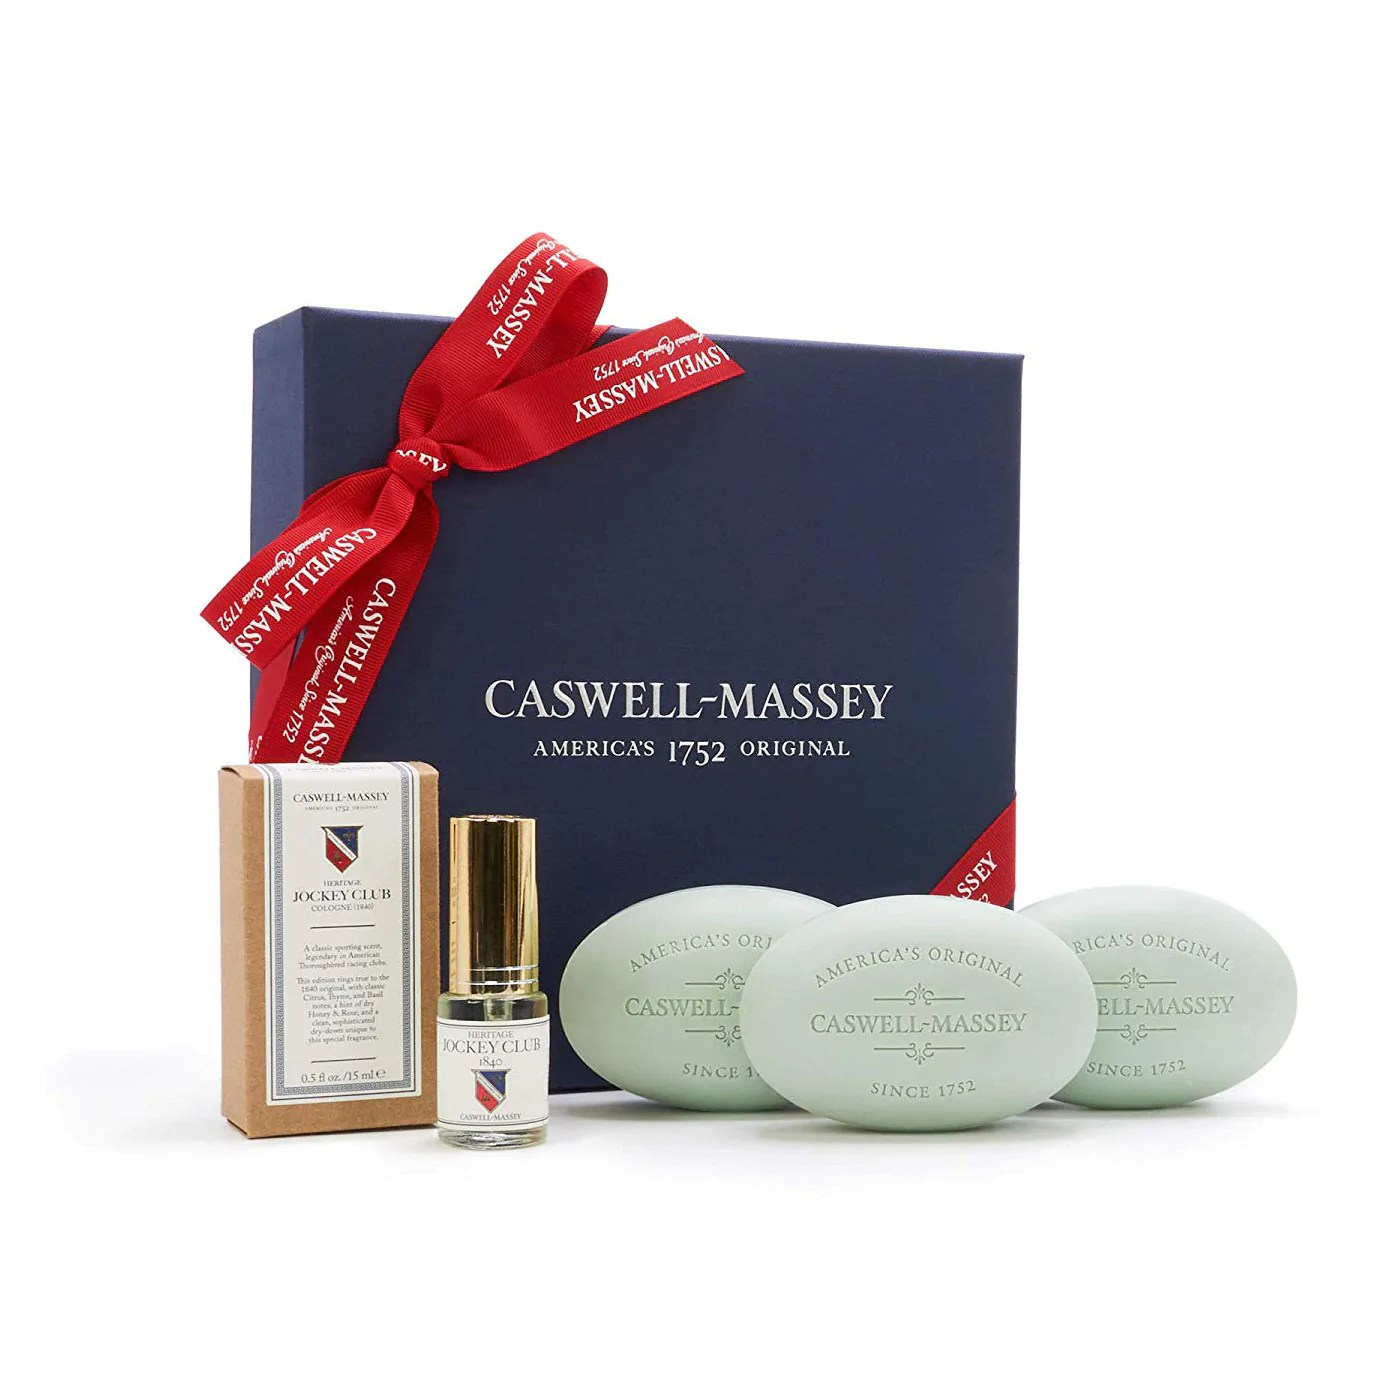 Heritage Cologne Sampler Caswell-massey